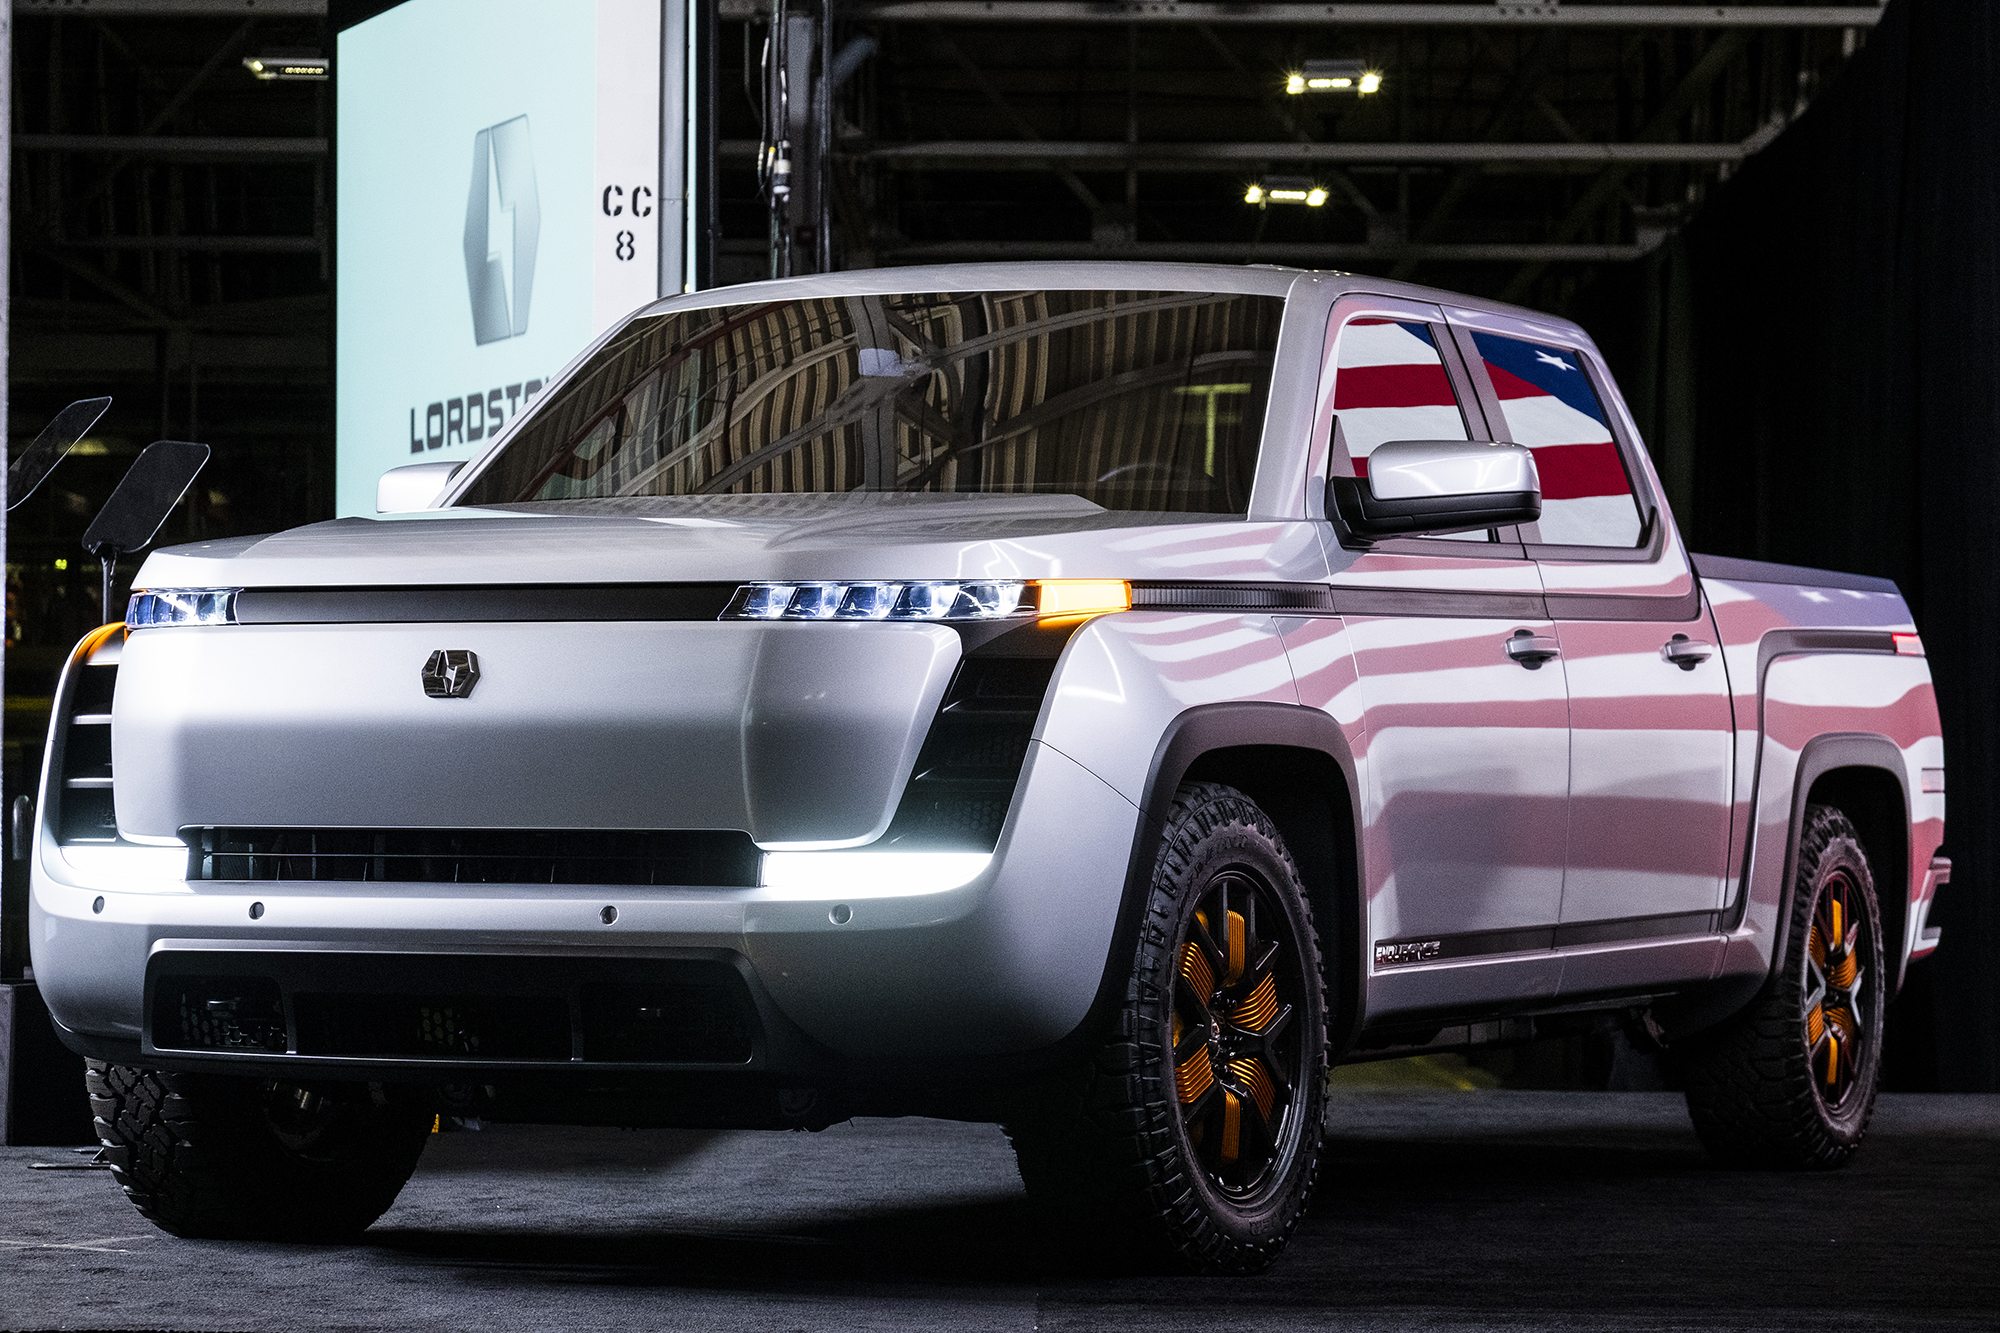 Electric truck maker Lordstown Motors is going public